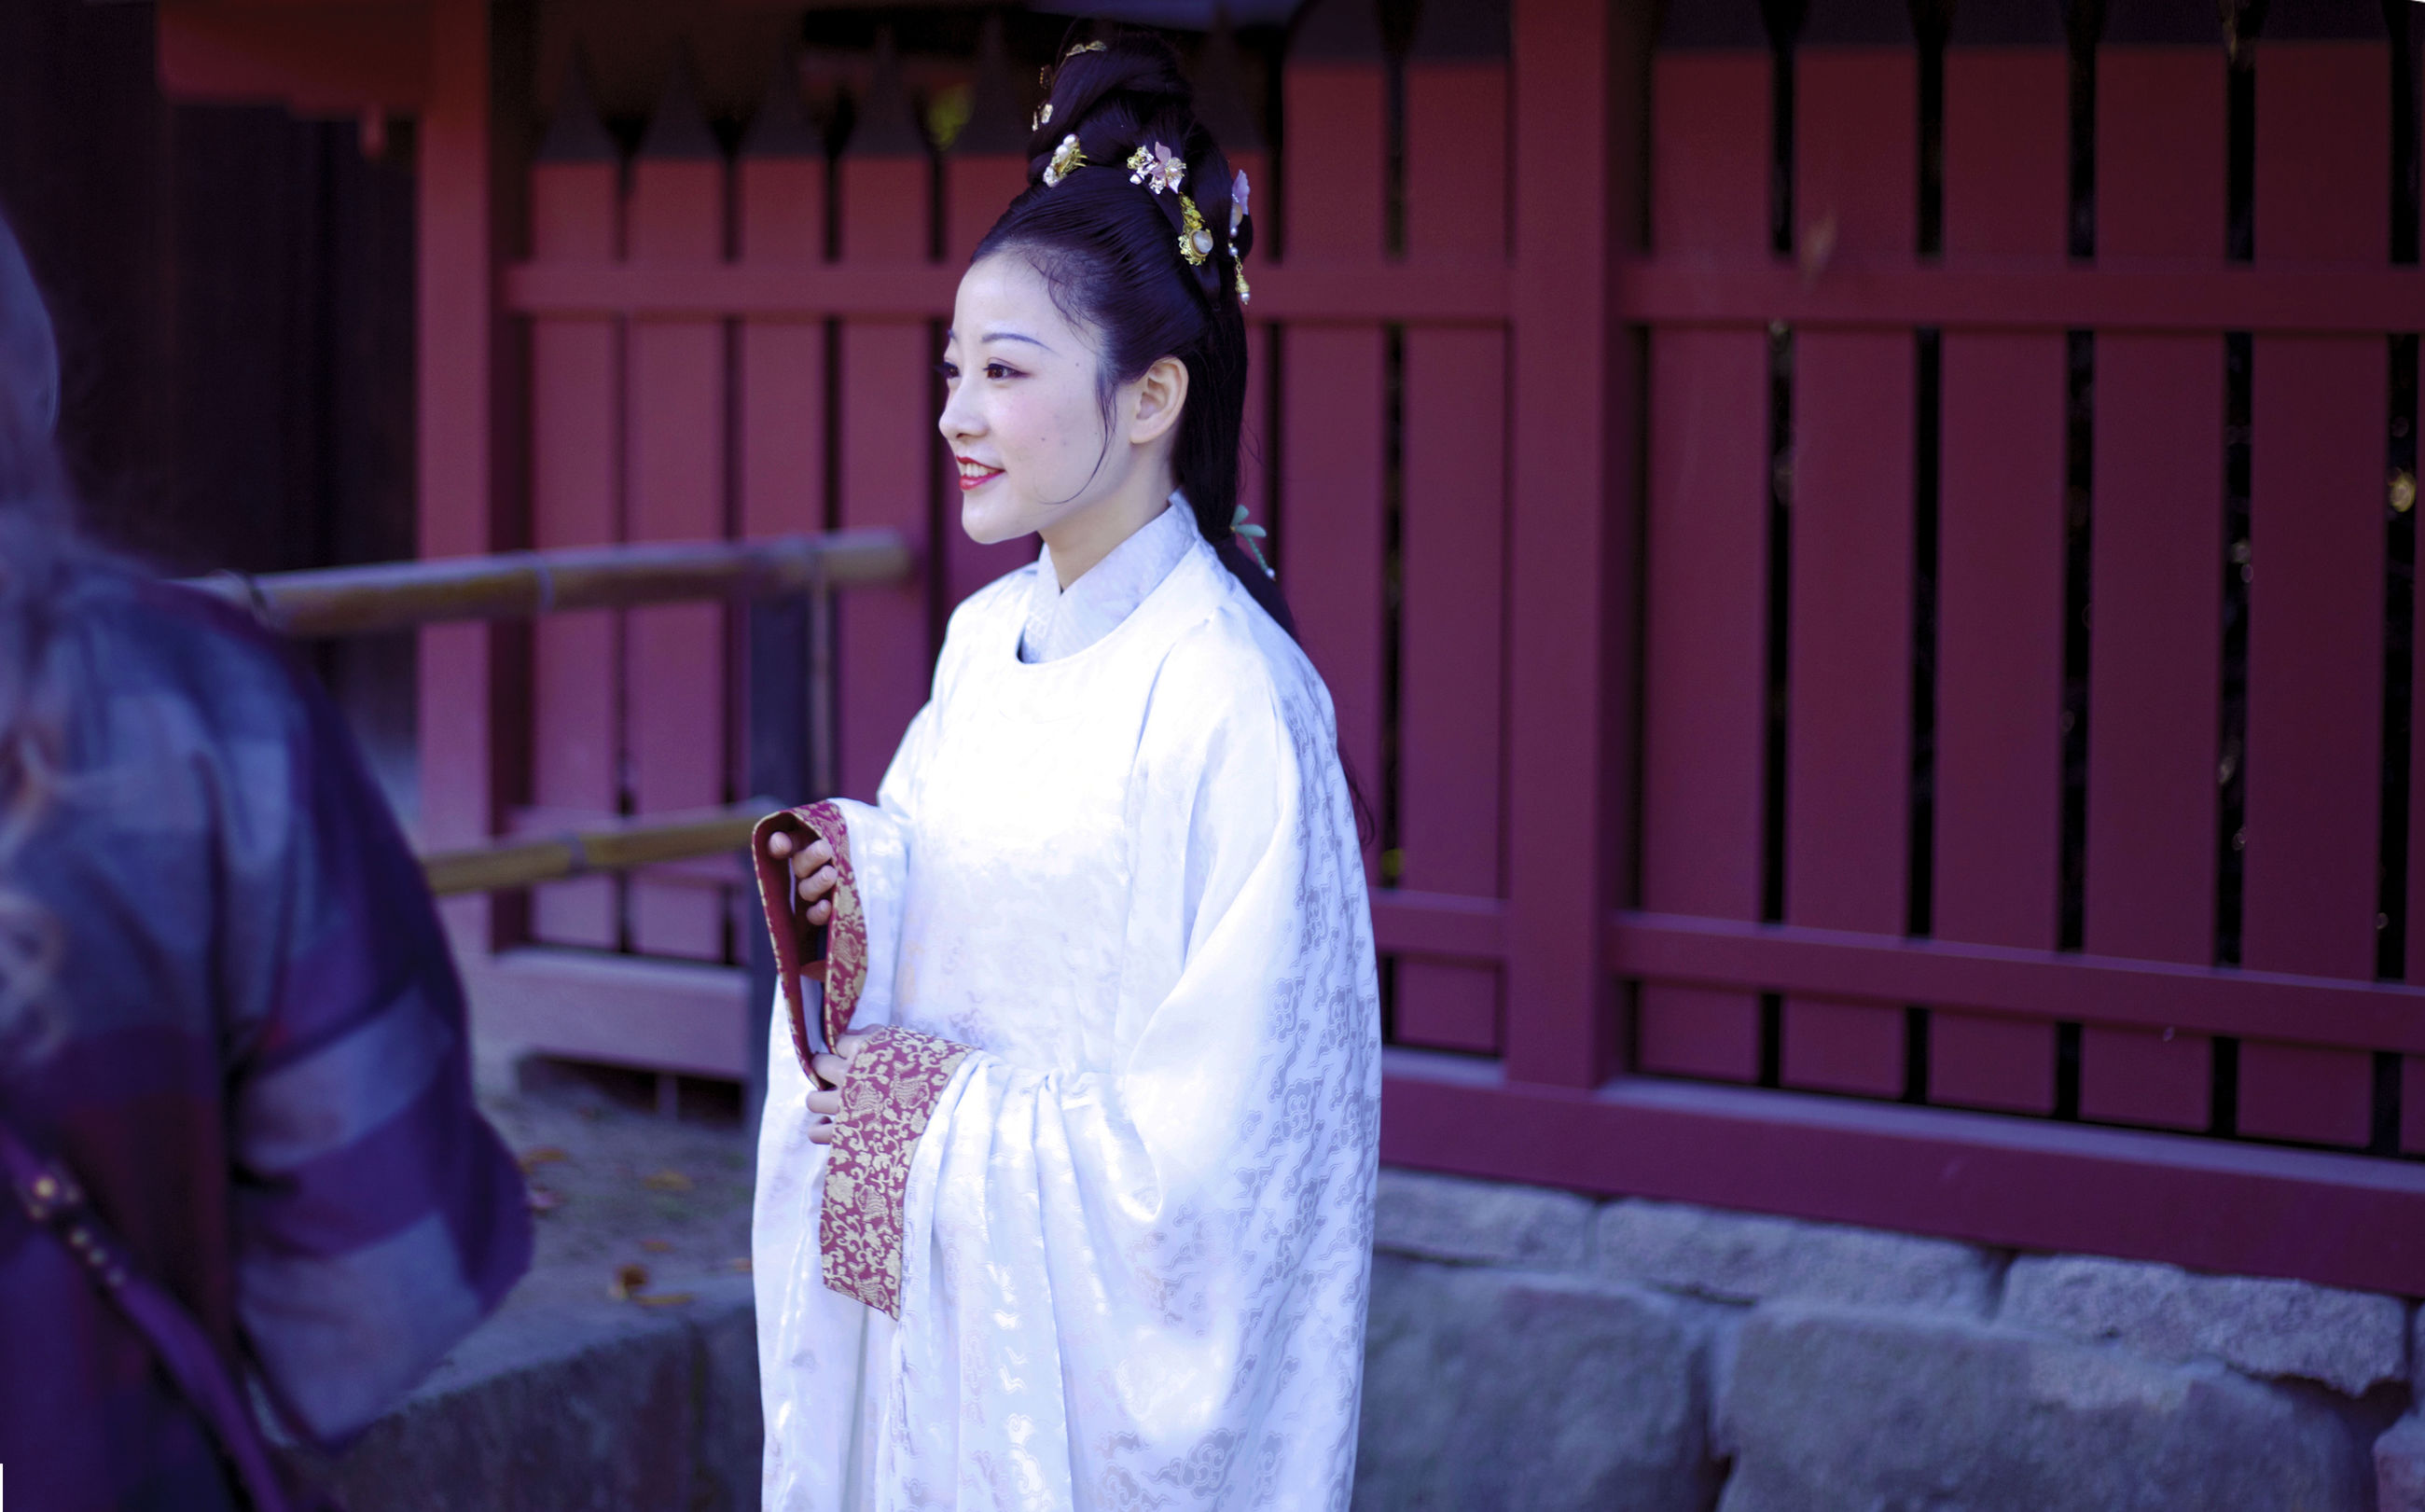 real people, traditional clothing, kimono, young adult, young women, outdoors, lifestyles, spirituality, standing, architecture, building exterior, day, women, smiling, full length, beautiful woman, people